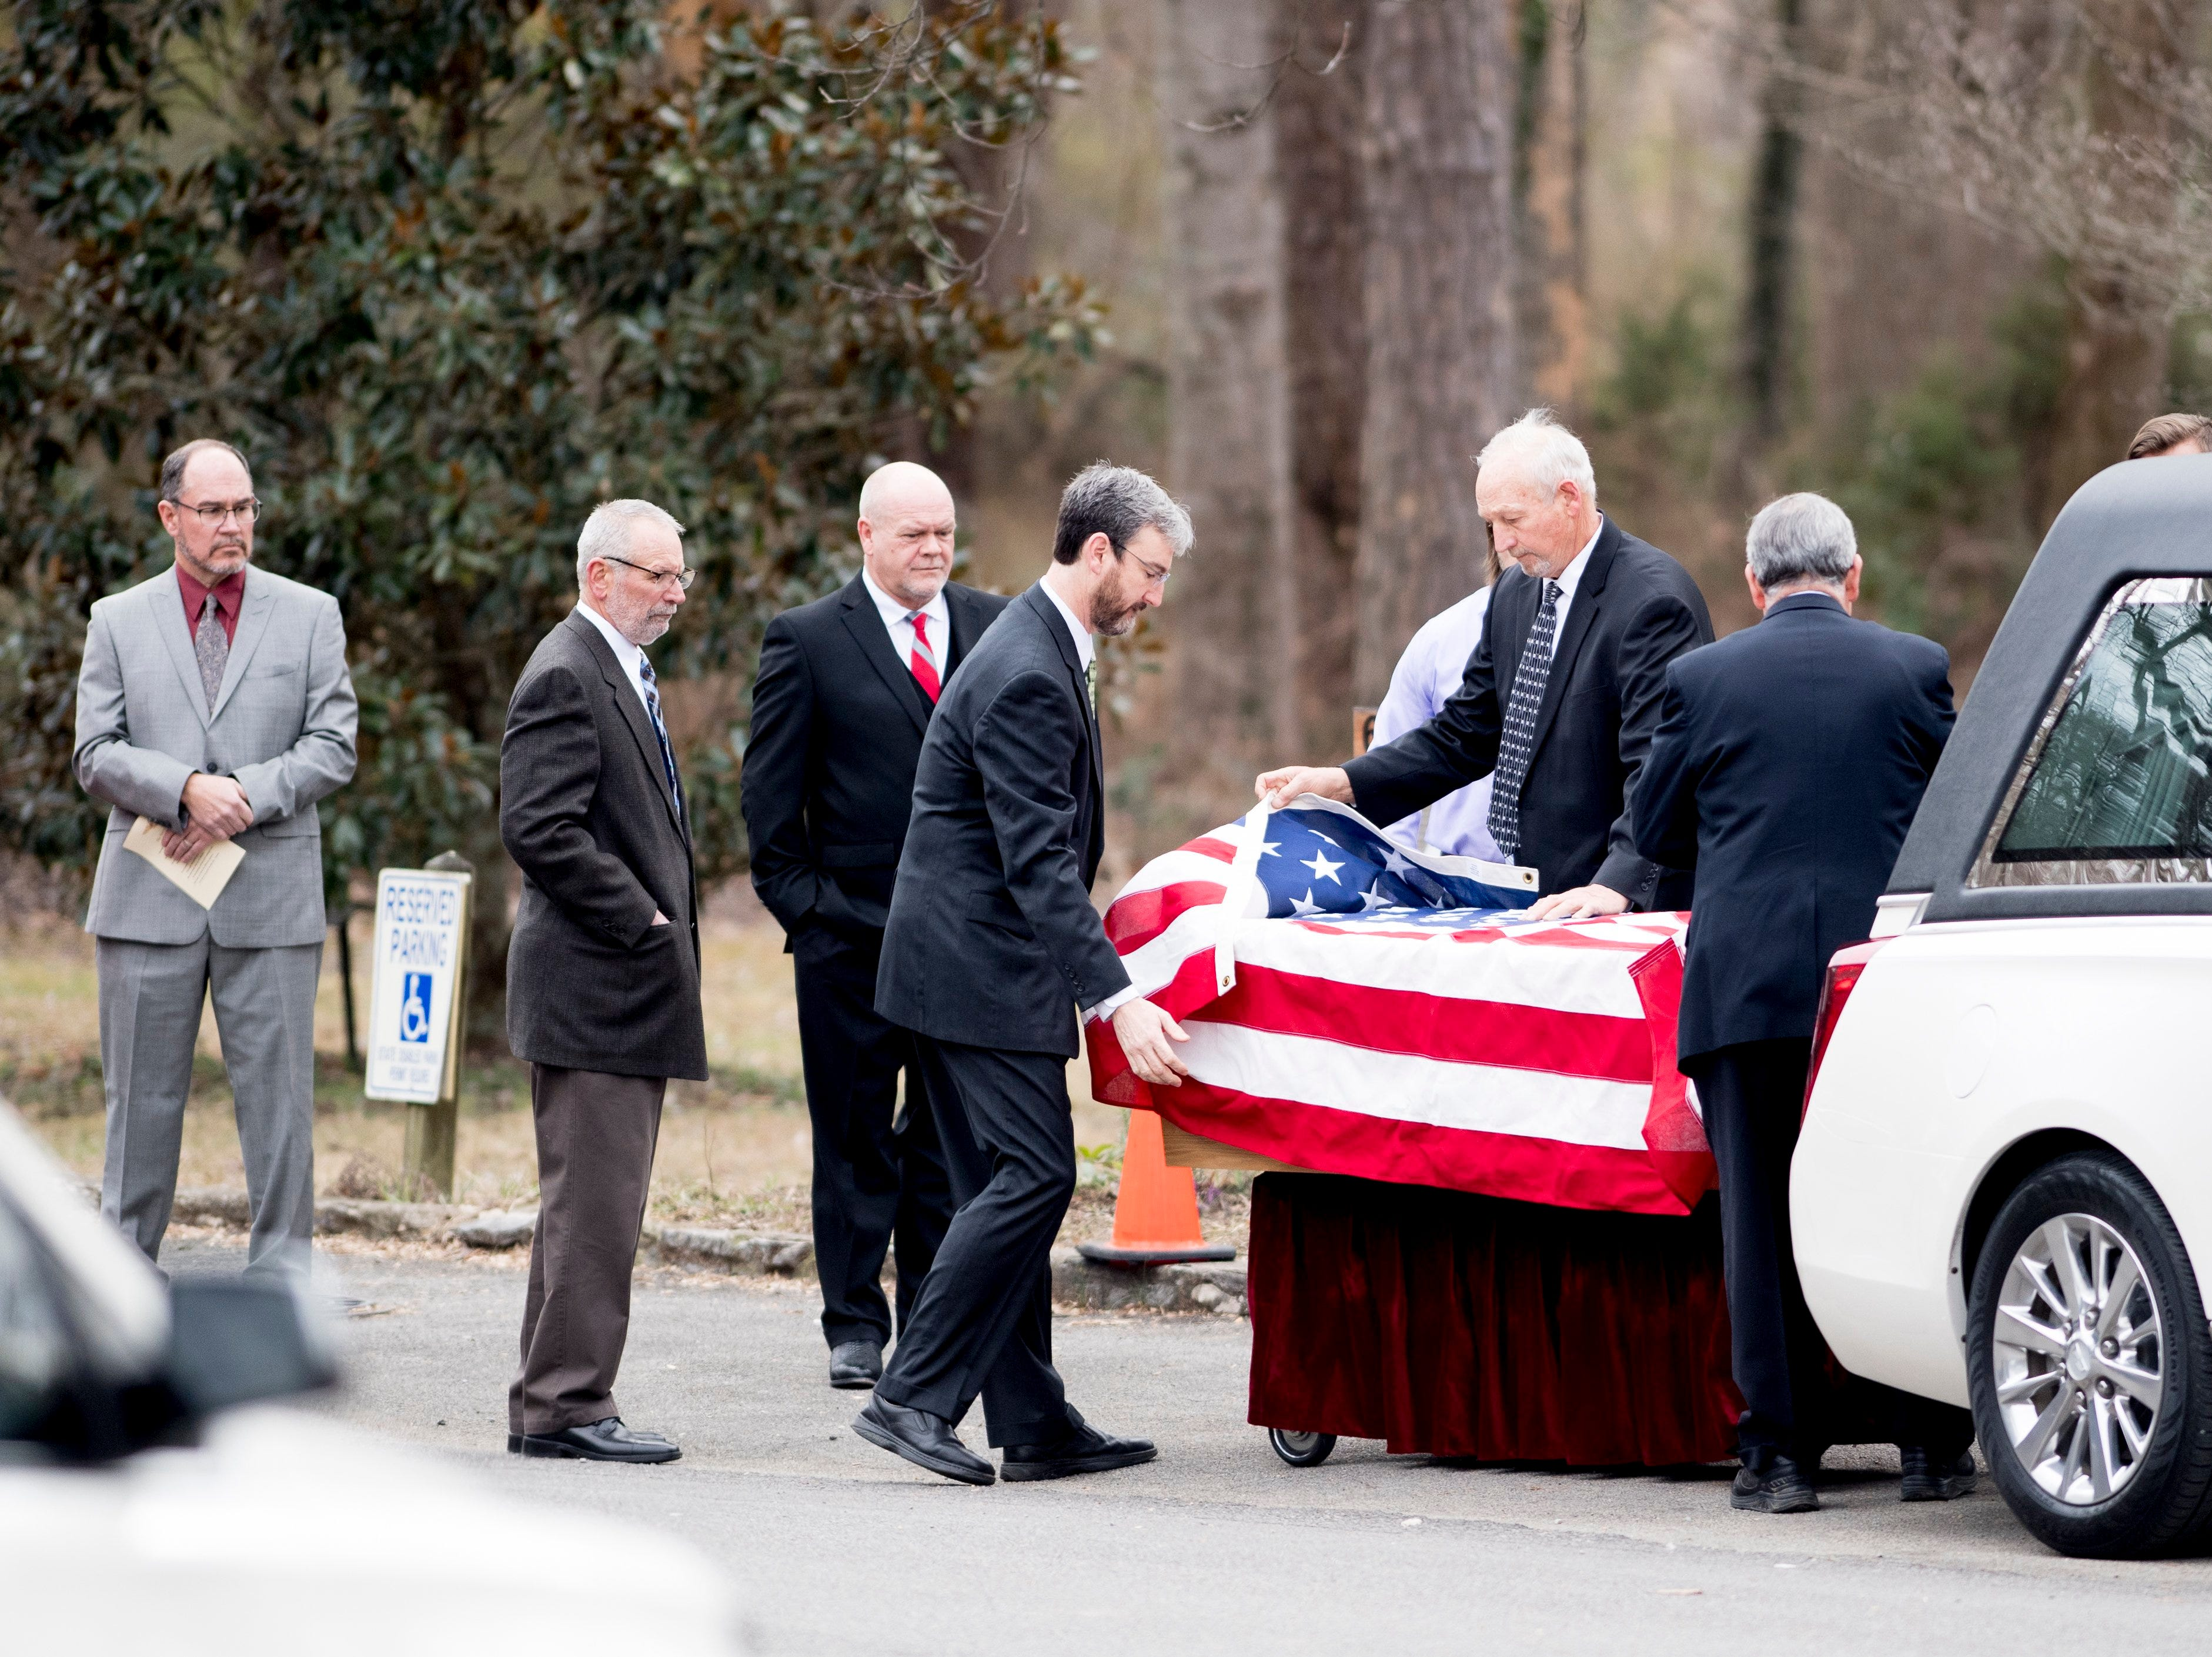 Pallbearers drape a United States flag over the casket of Rosemary Mariner, the US Navy's first female fighter pilot, at Norris United Methodist Church in Norris, Tennessee on Saturday, February 2, 2019. Mariner died January 24th of cancer.